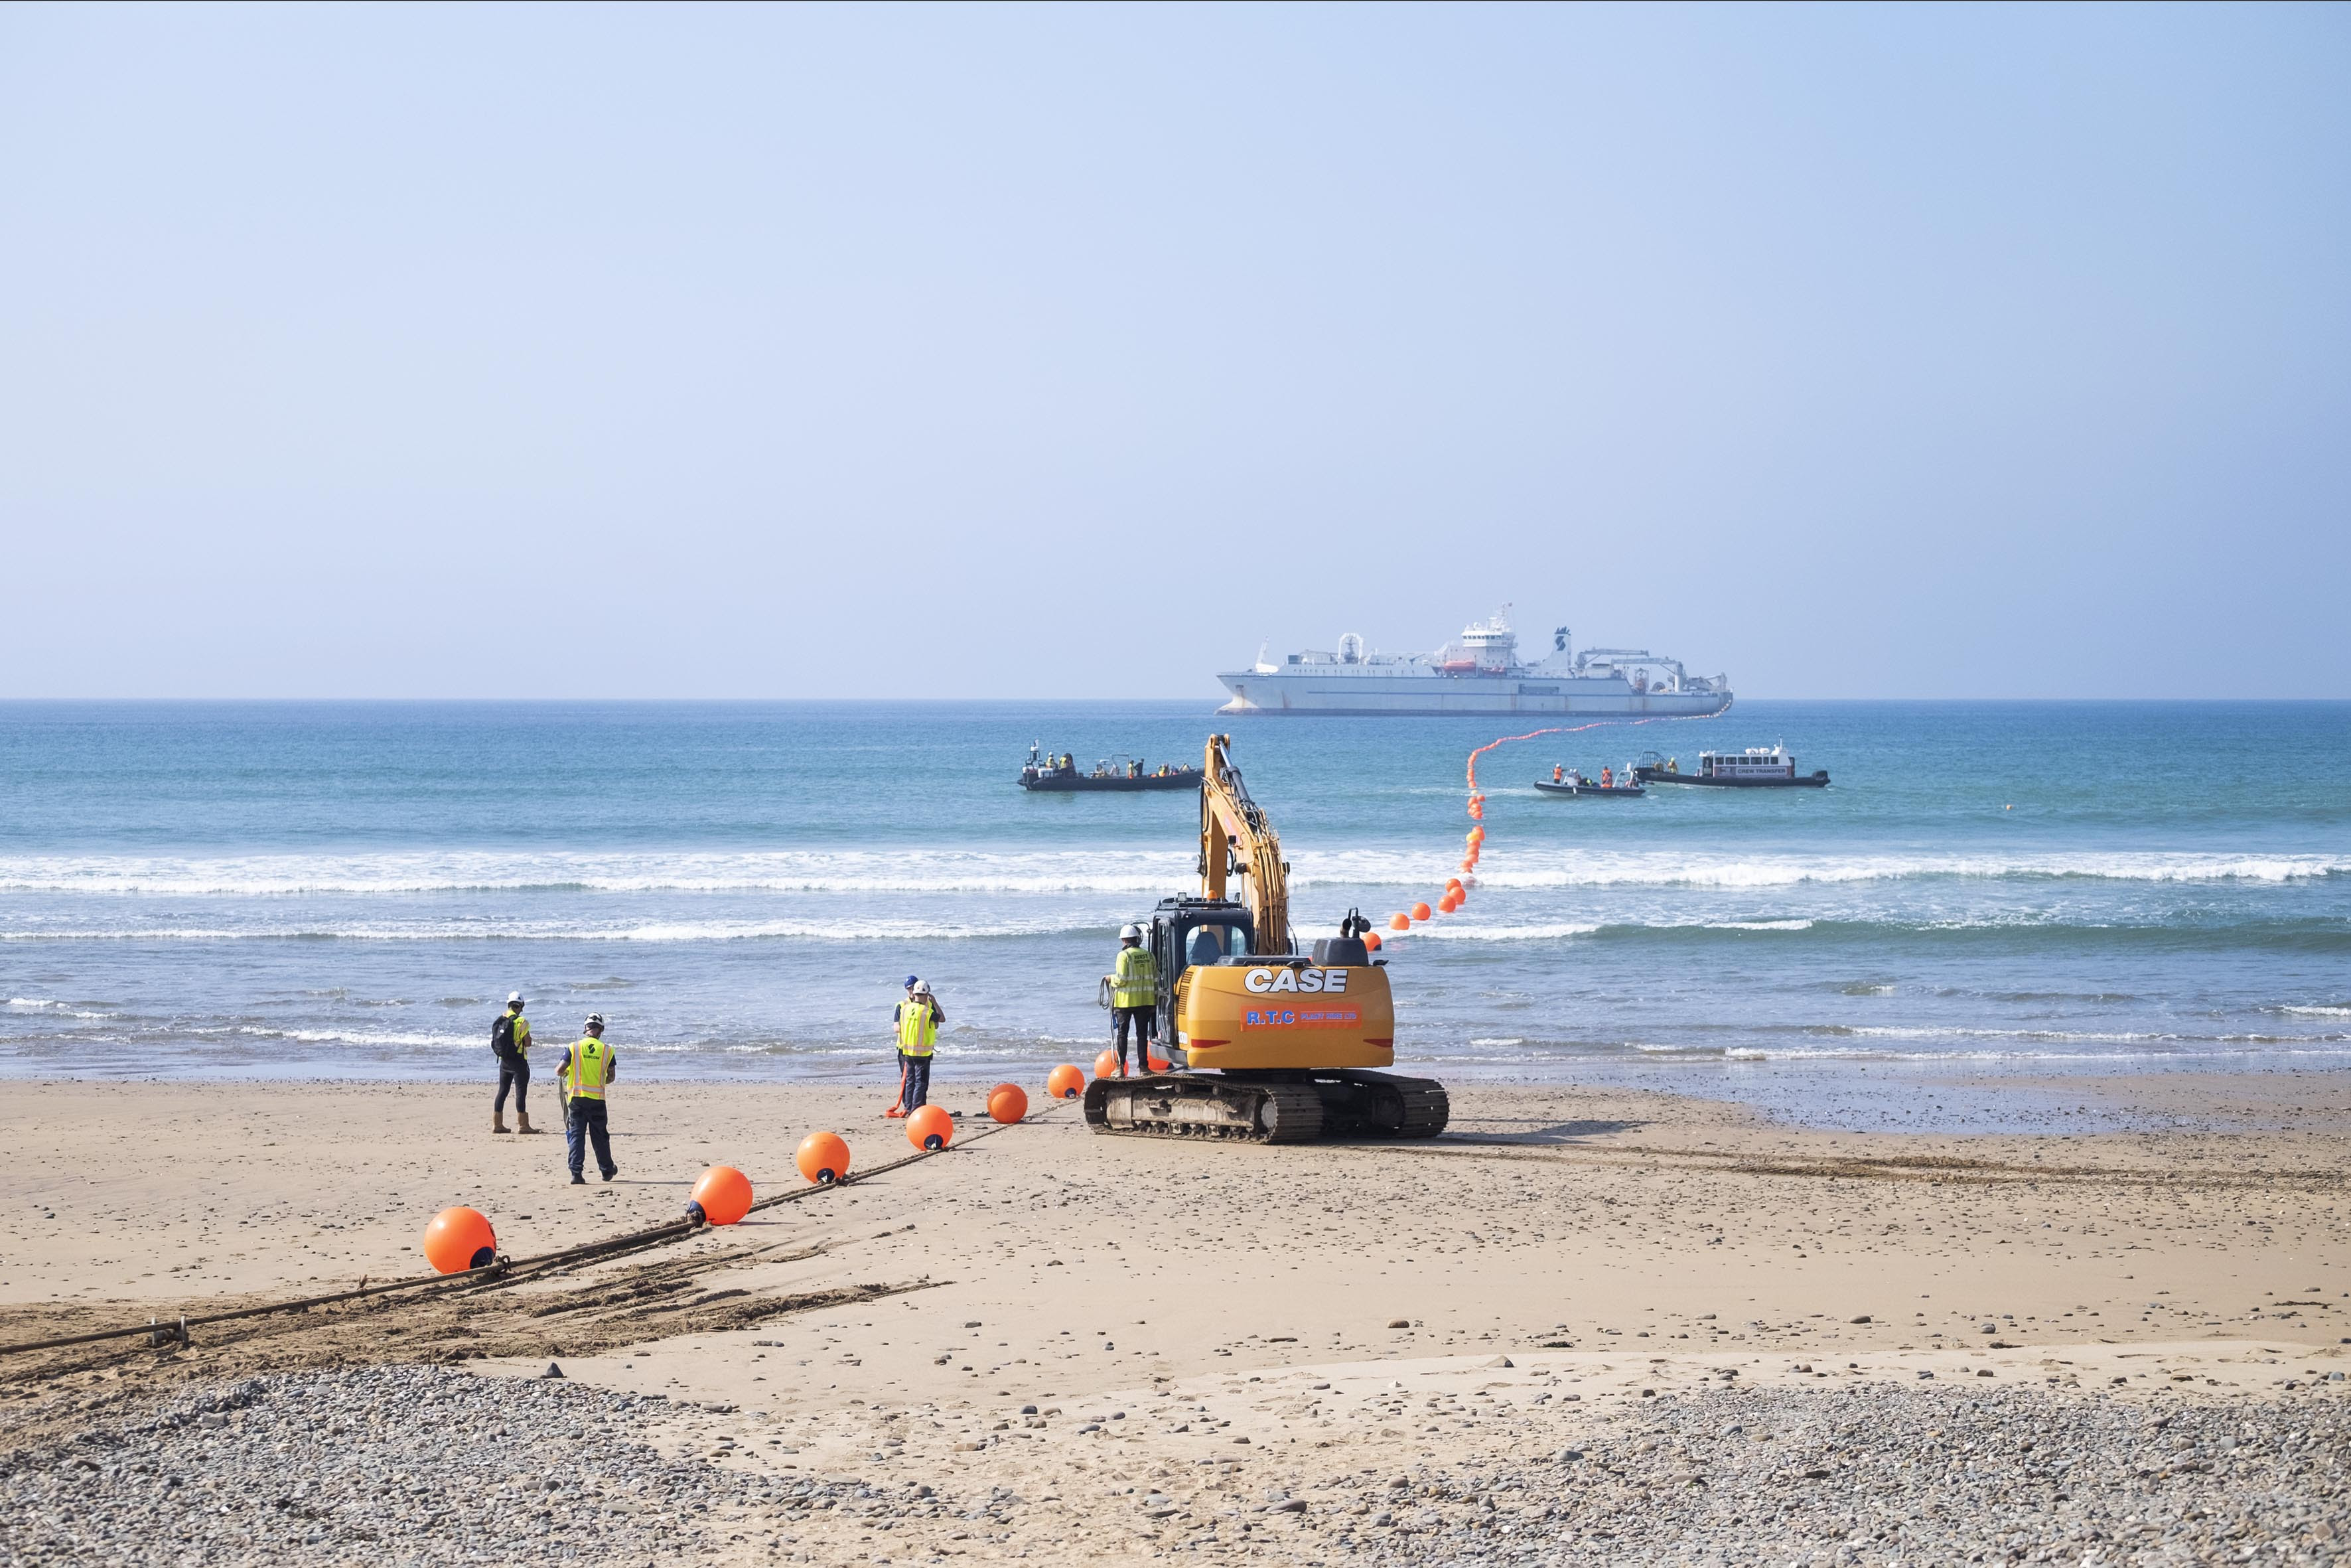 Catch of the day... for Google, anyway: Transatlantic Cornwall cable hauled ashore